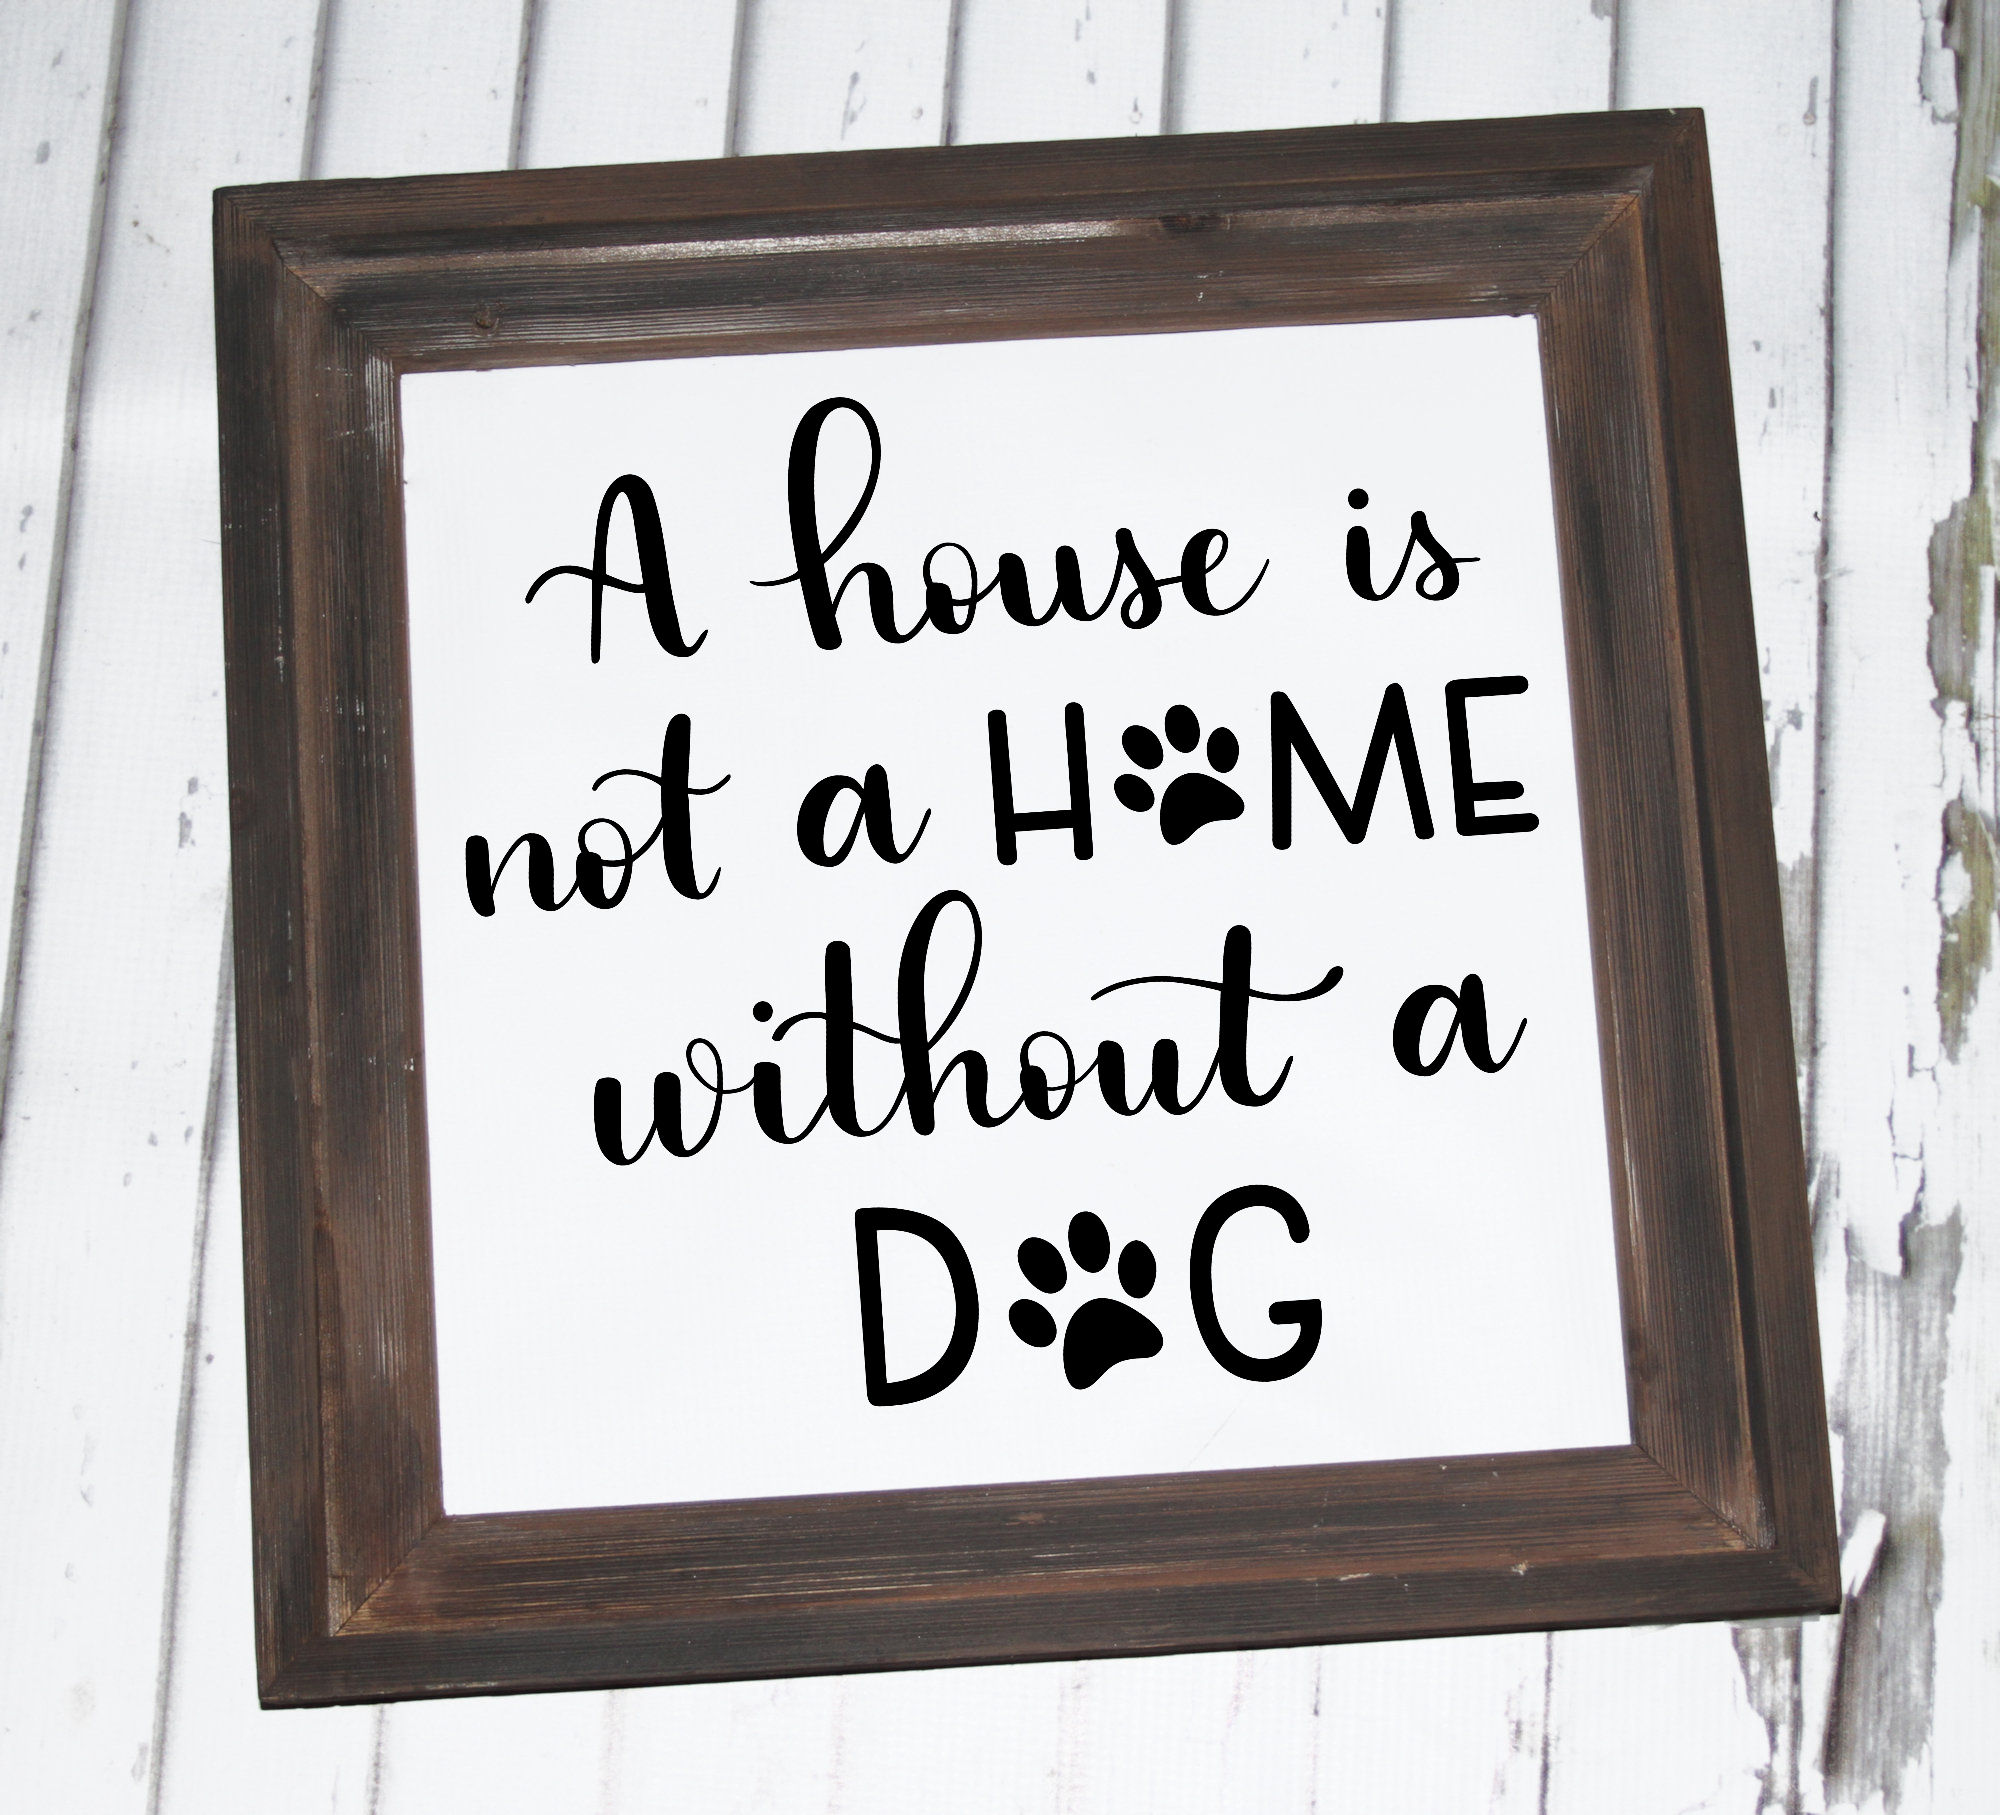 Dog SVG - A house is not a home without a dog, Handlettered example image 2